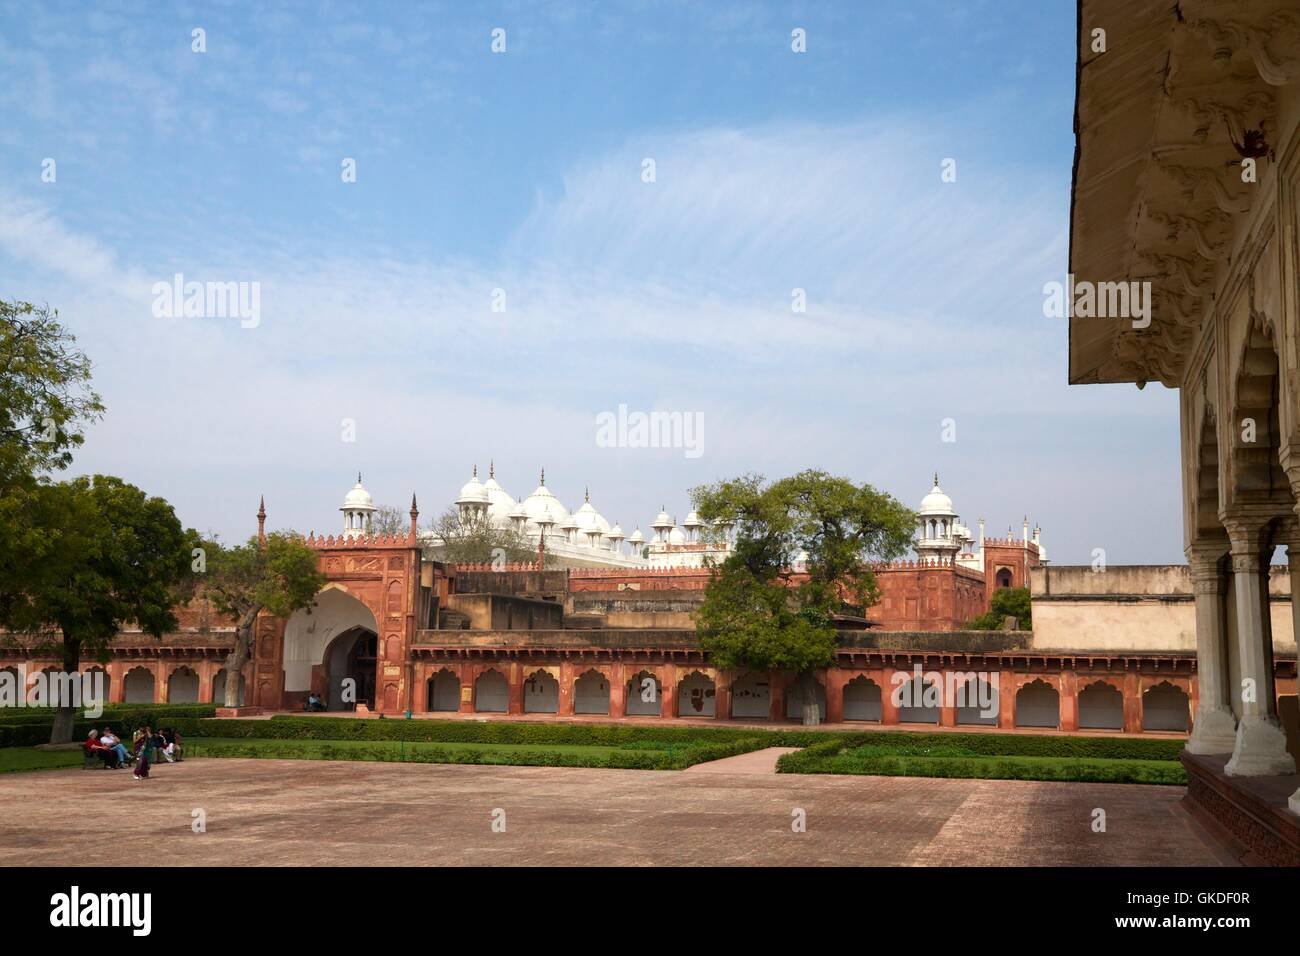 Moti Masjid or the Pearl Mosque,from Diwan-i-Am, Hall of Public Audiences Red Fort Agra UNESCO World Heritage Site - Stock Image